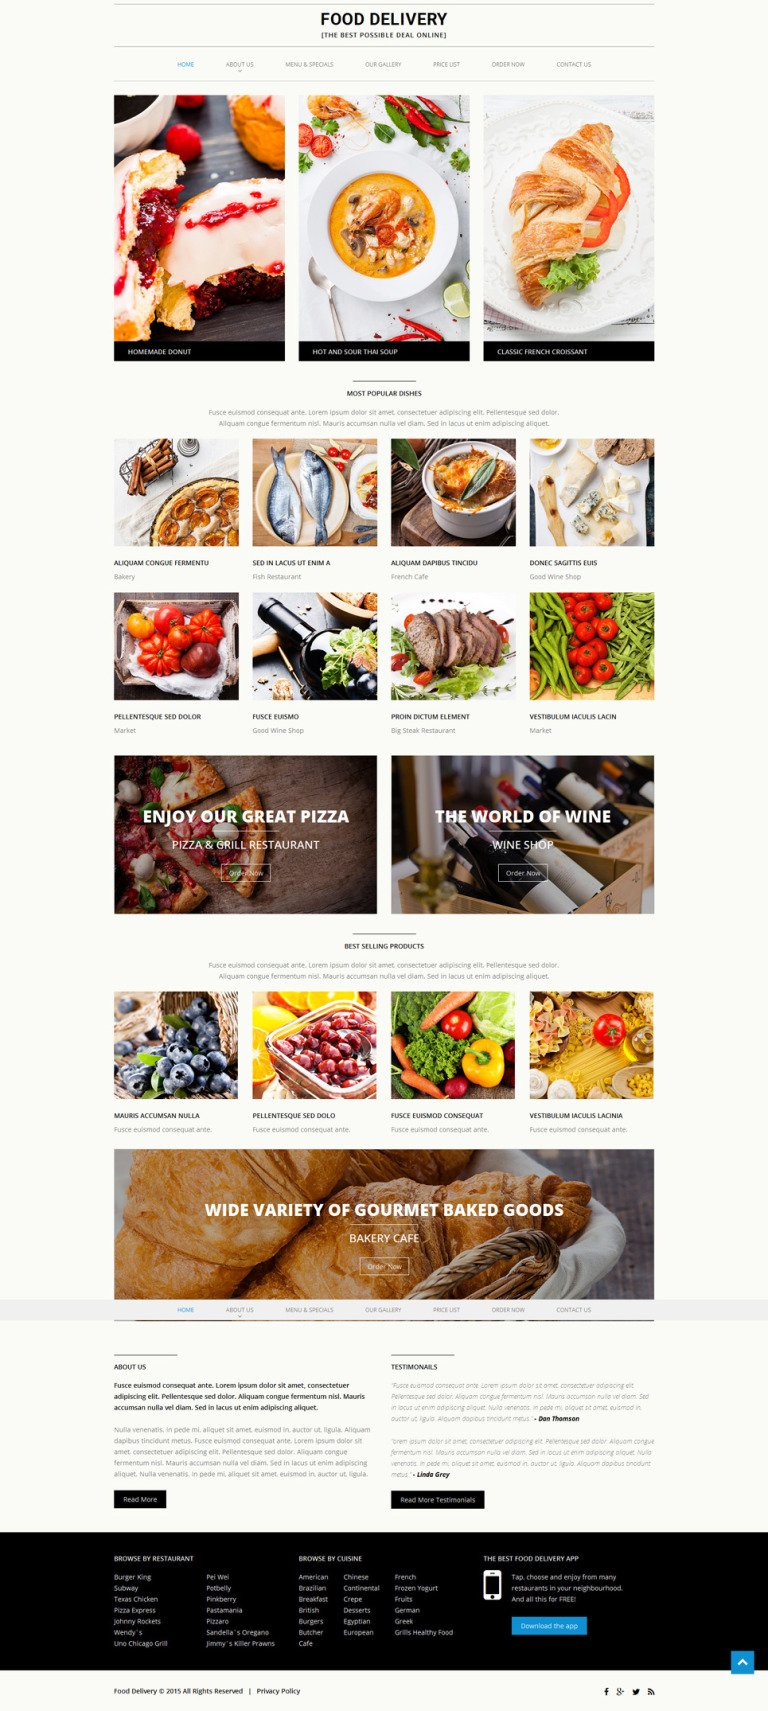 Grocery Shopping Website Template New Screenshots BIG